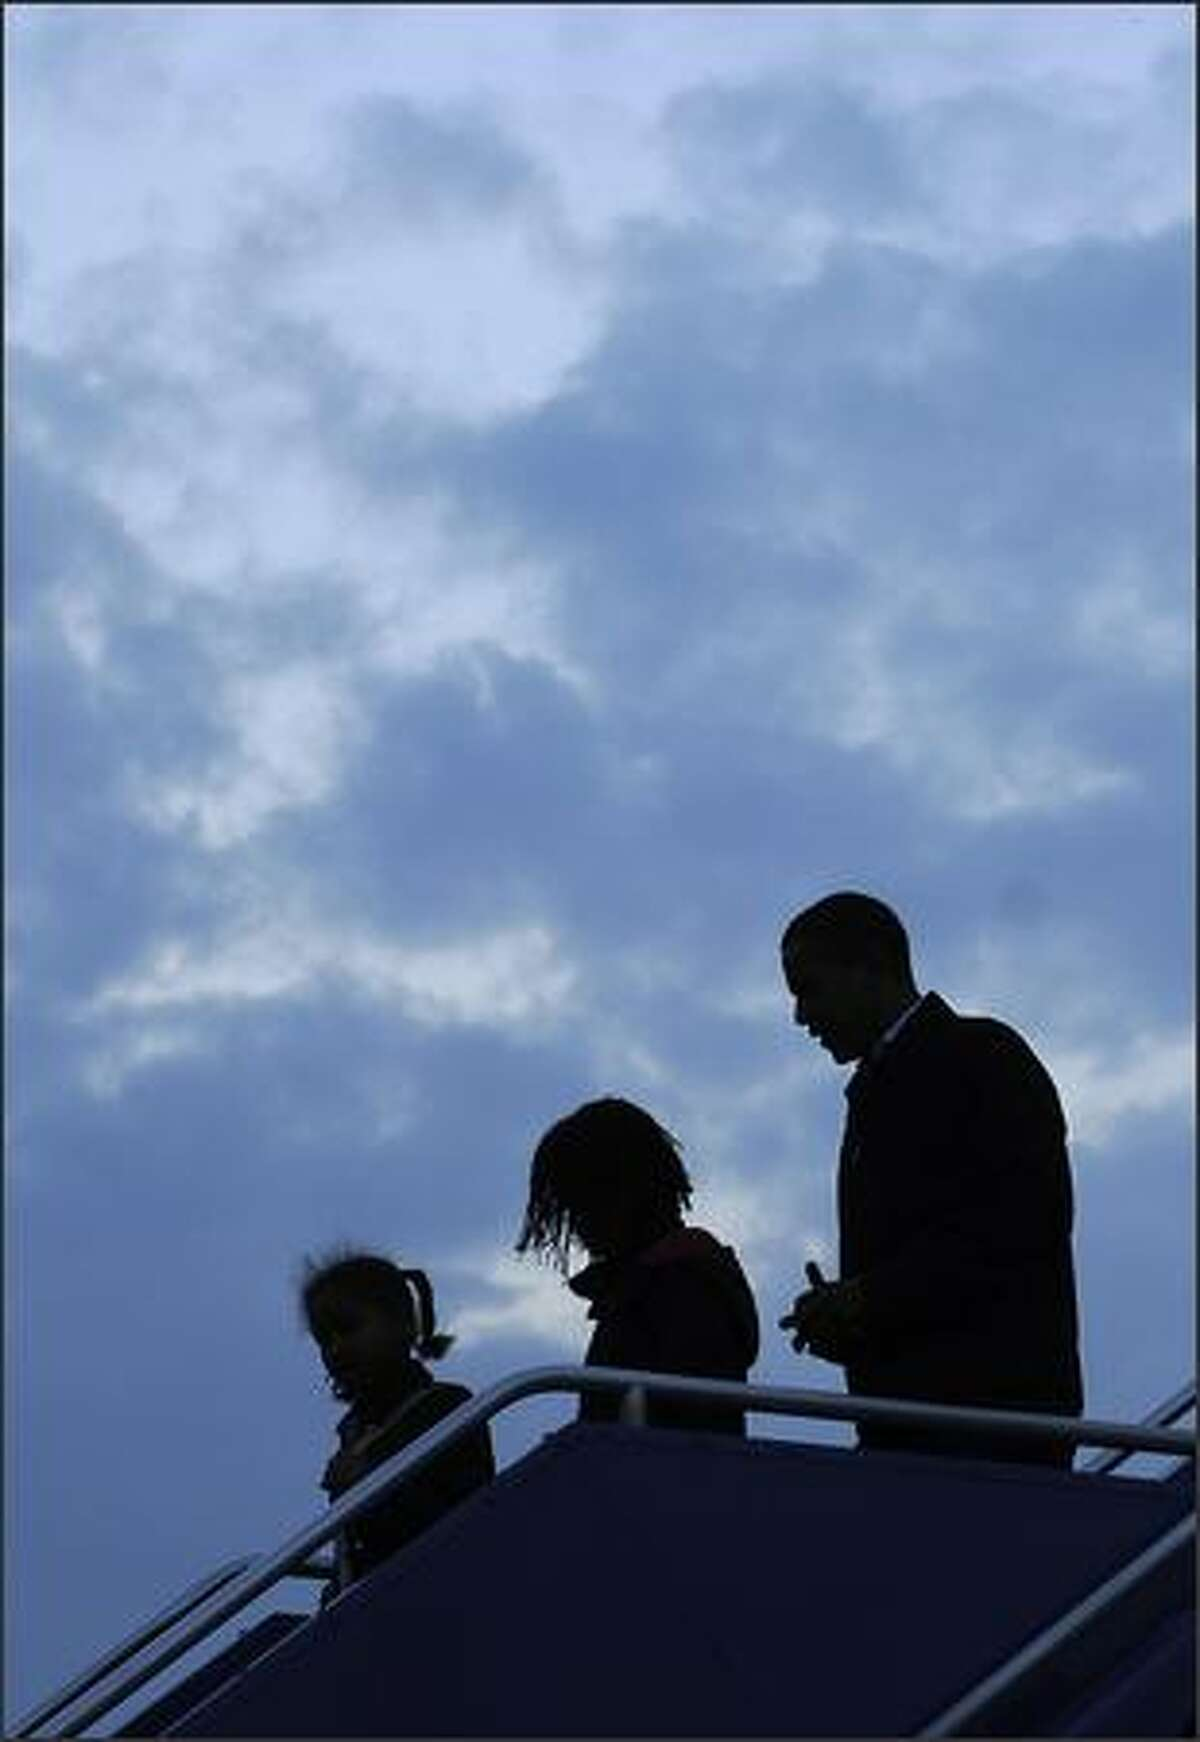 Democratic presidential candidate Illinois Senator Barack Obama and his daughters Sasha, 7, and Malia, 10, disembark from his campaign plane in Columbus, Ohio, on Sunday.